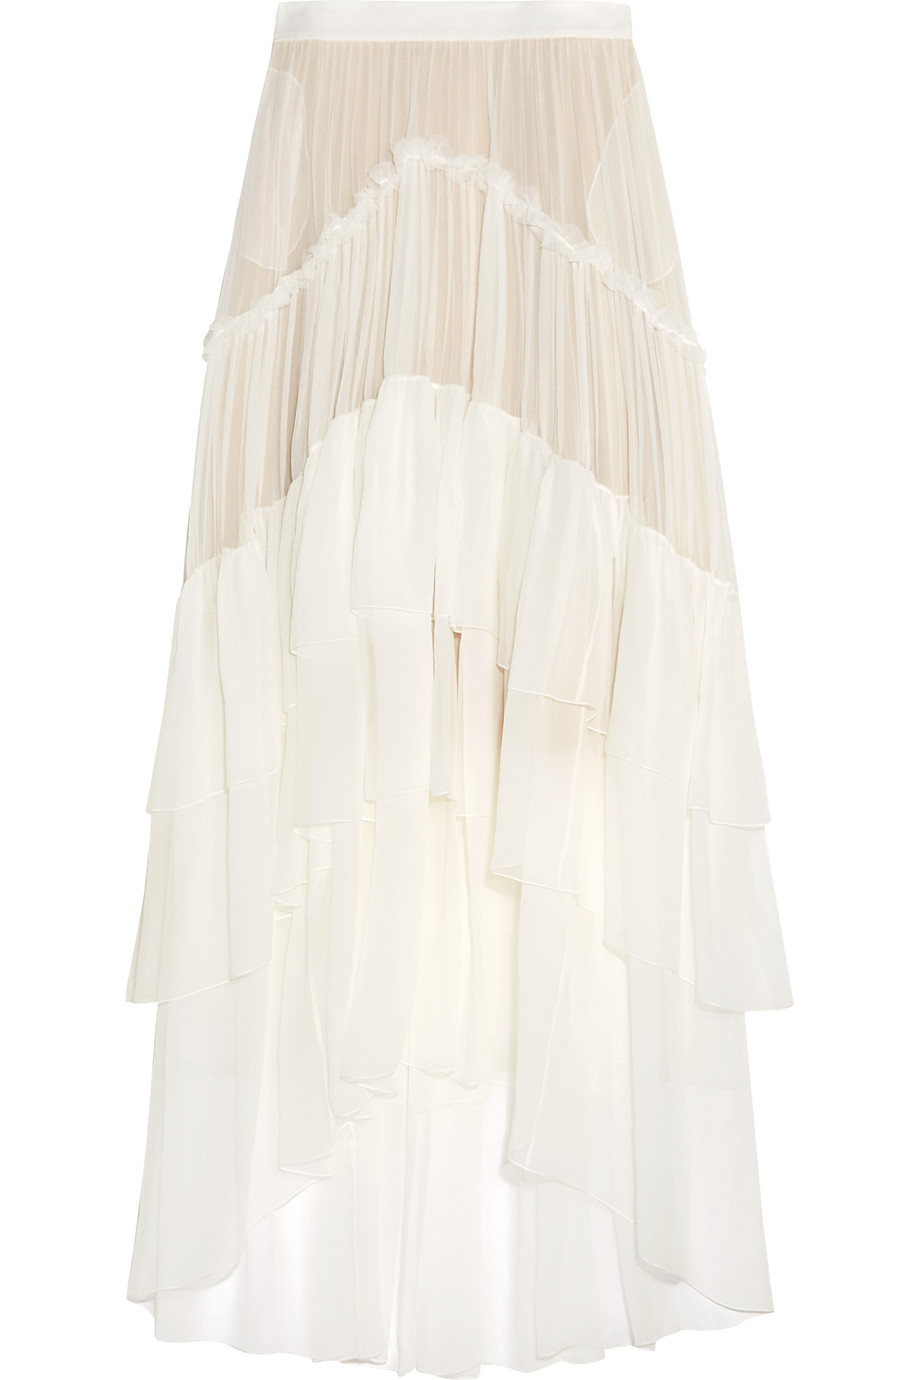 Chloé Ruffled Tiered Silk-Mousseline Maxi Skirt, Ivory, Women's, Size: 38